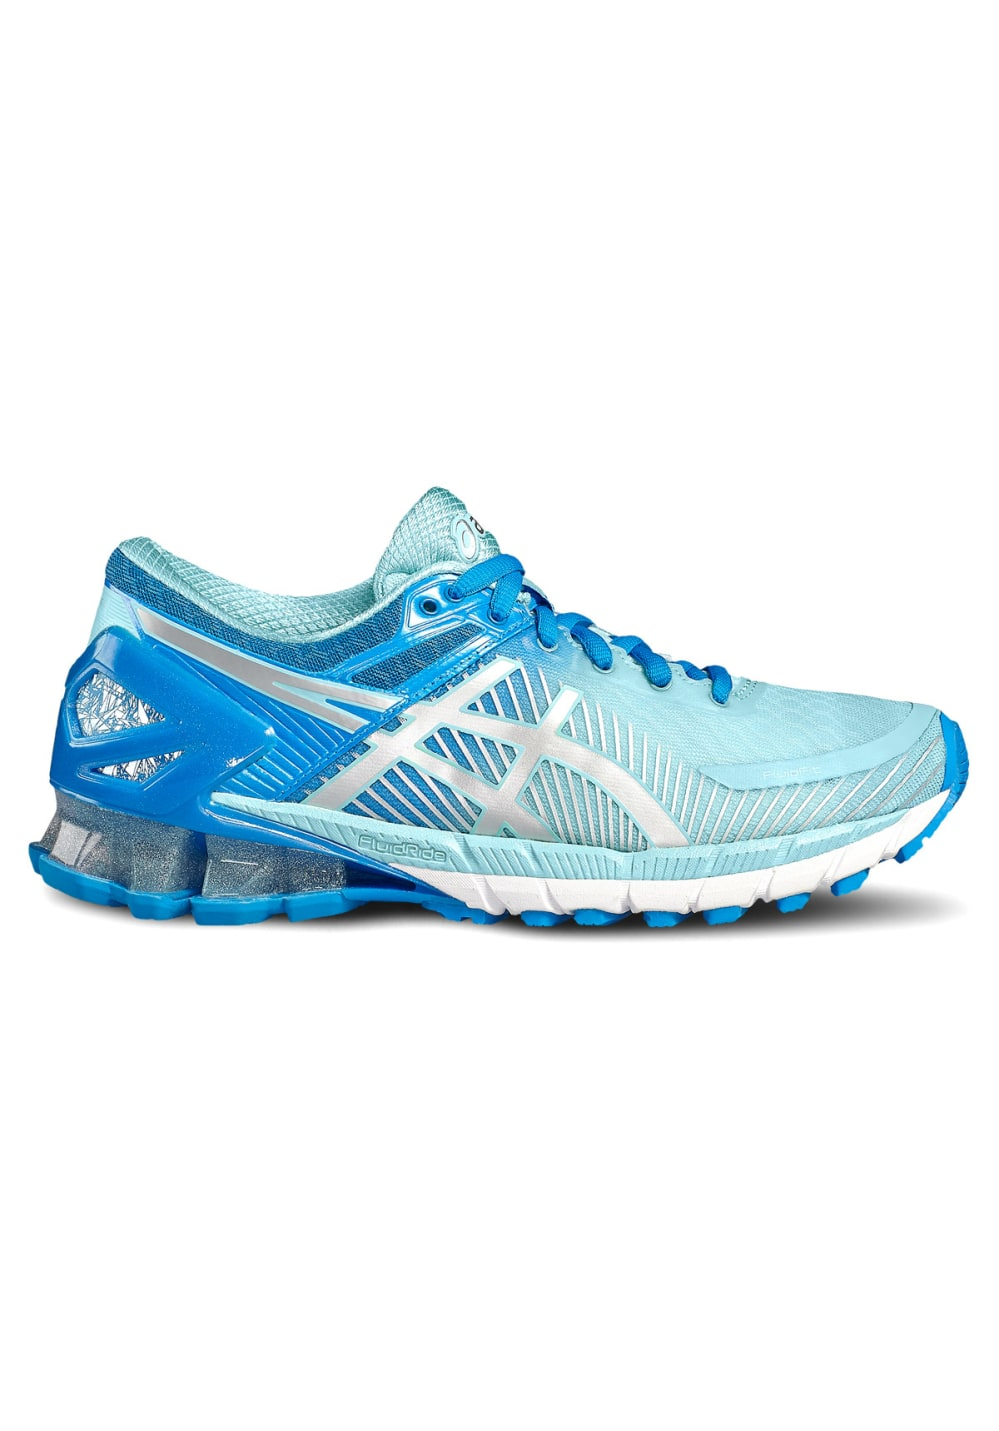 asics chaussures gel 19992 kinsei 2 chaussures homme homme cible 922f0e3 - wisespend.website